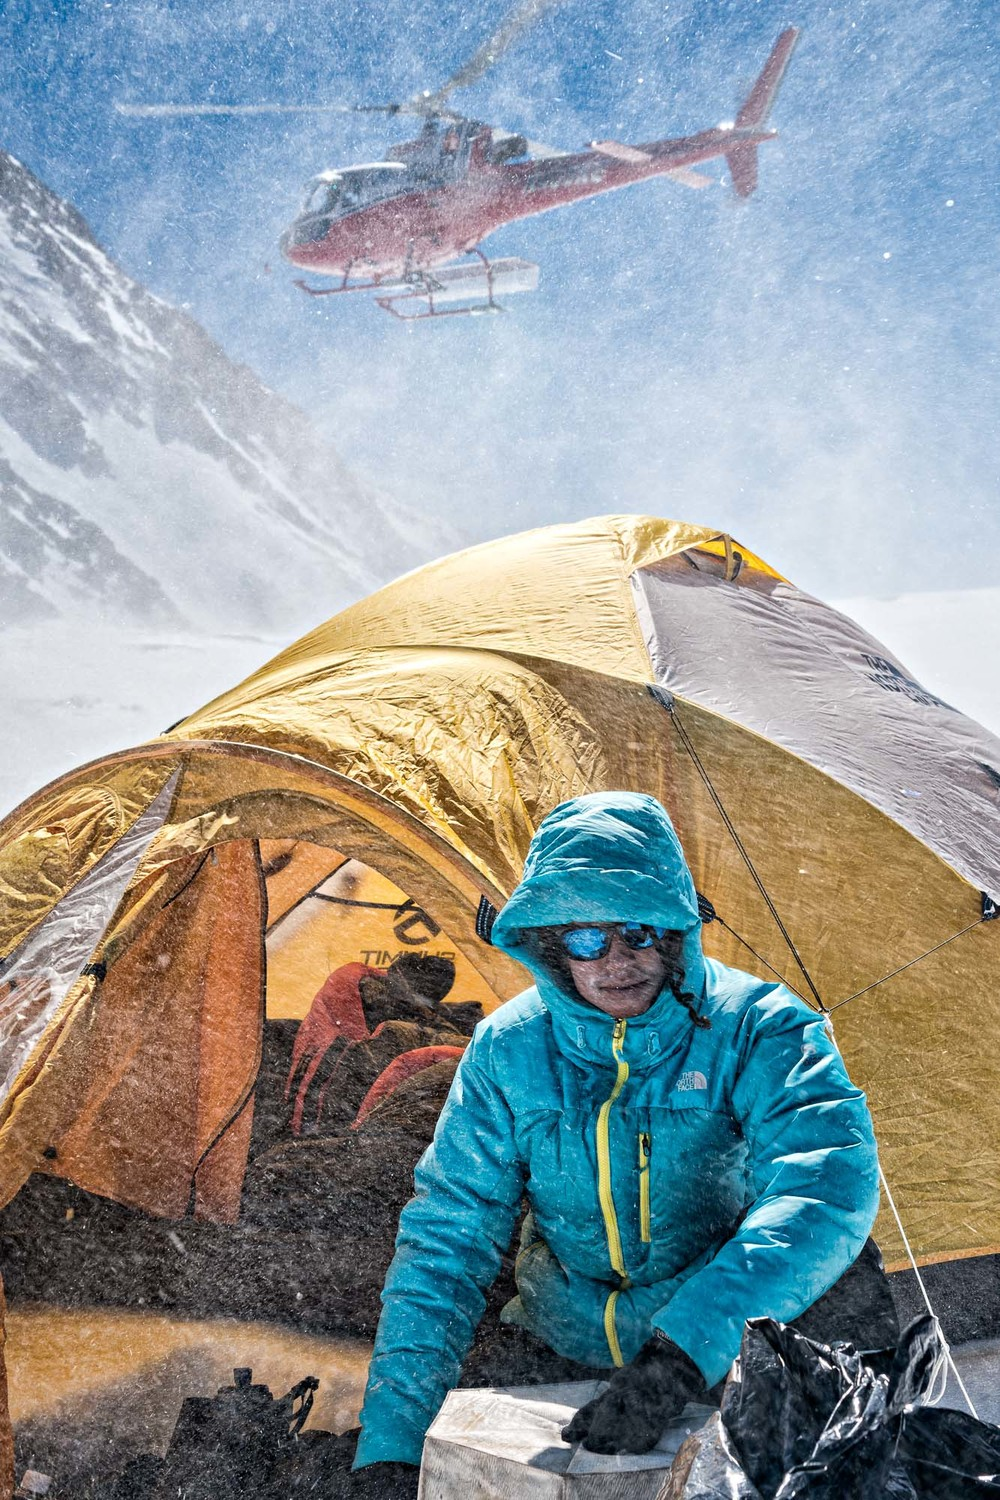 An American Ascent /Expedition Denali